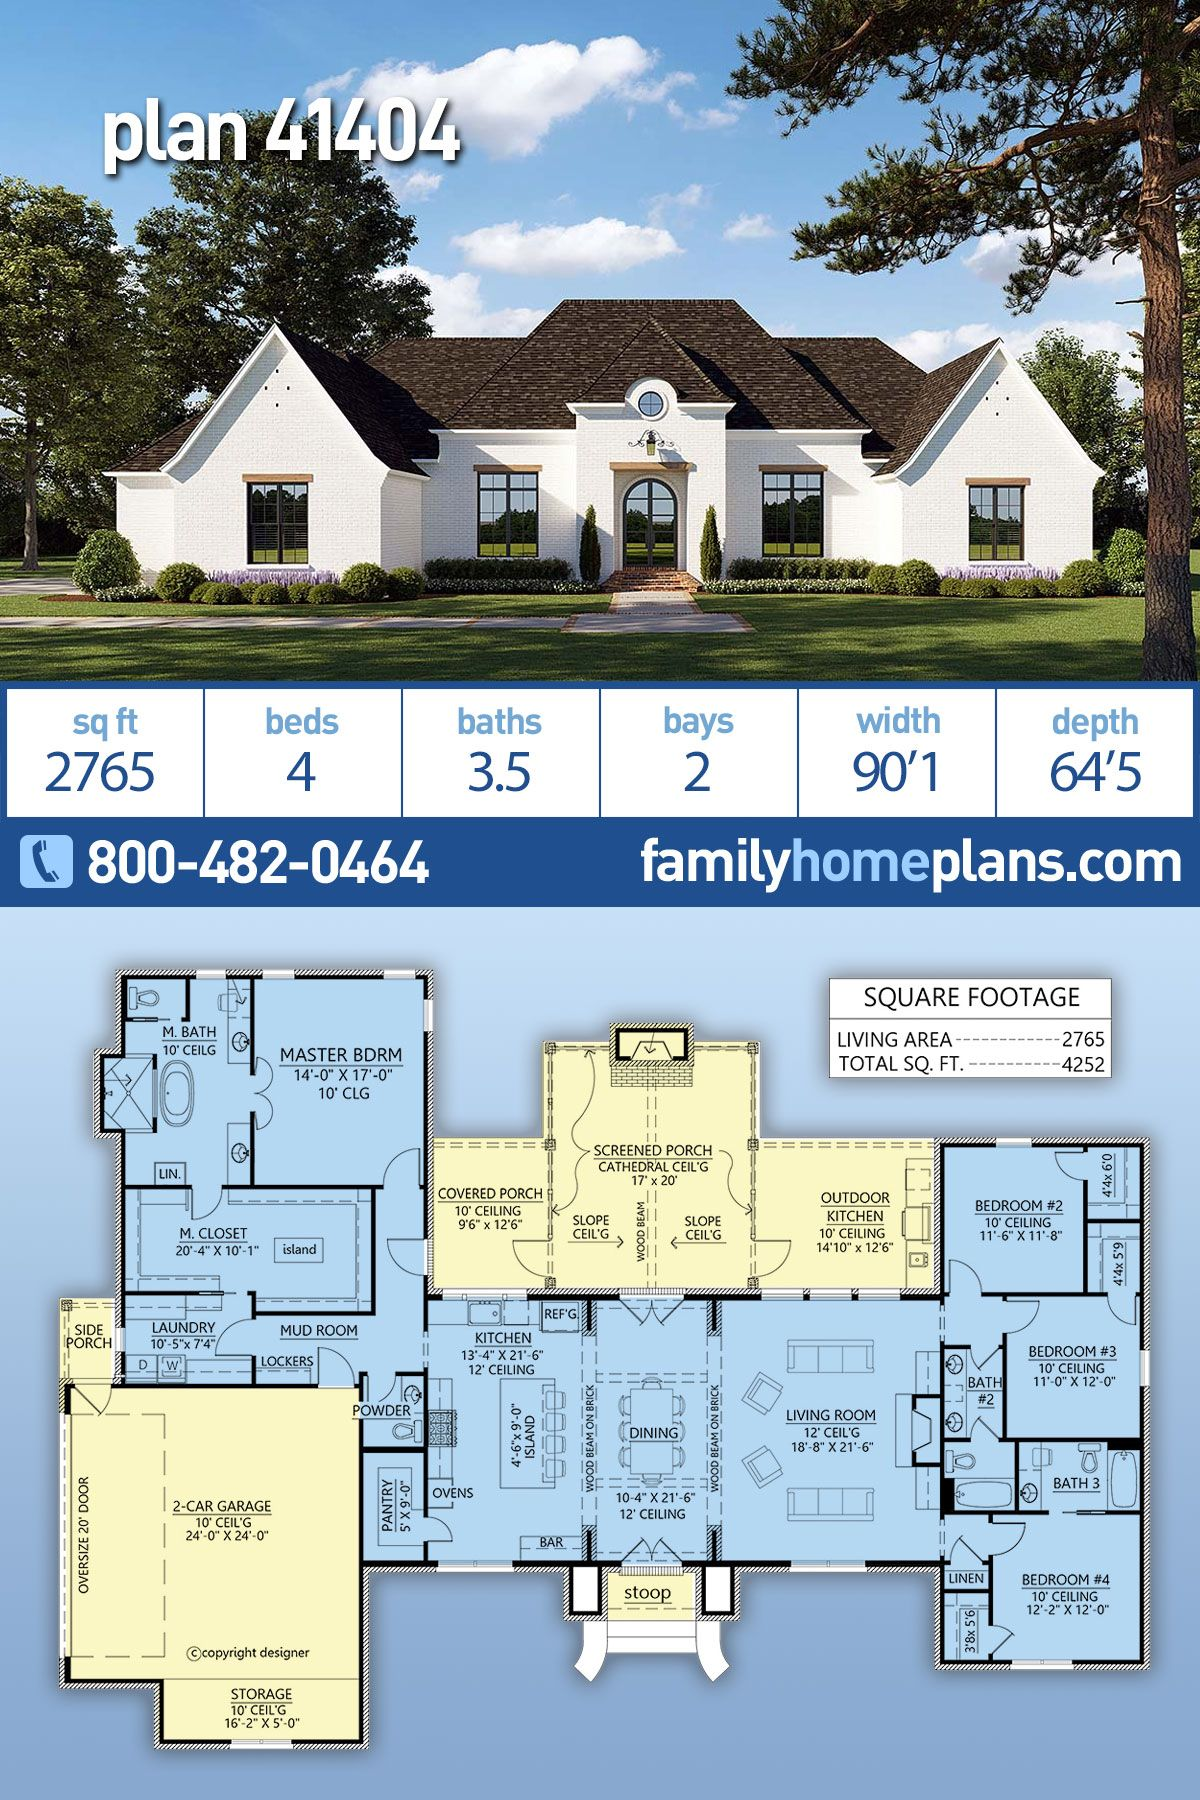 Traditional Style House Plan 41404 With 4 Bed 4 Bath 2 Car Garage French Country House Plans Country House Plans Family House Plans